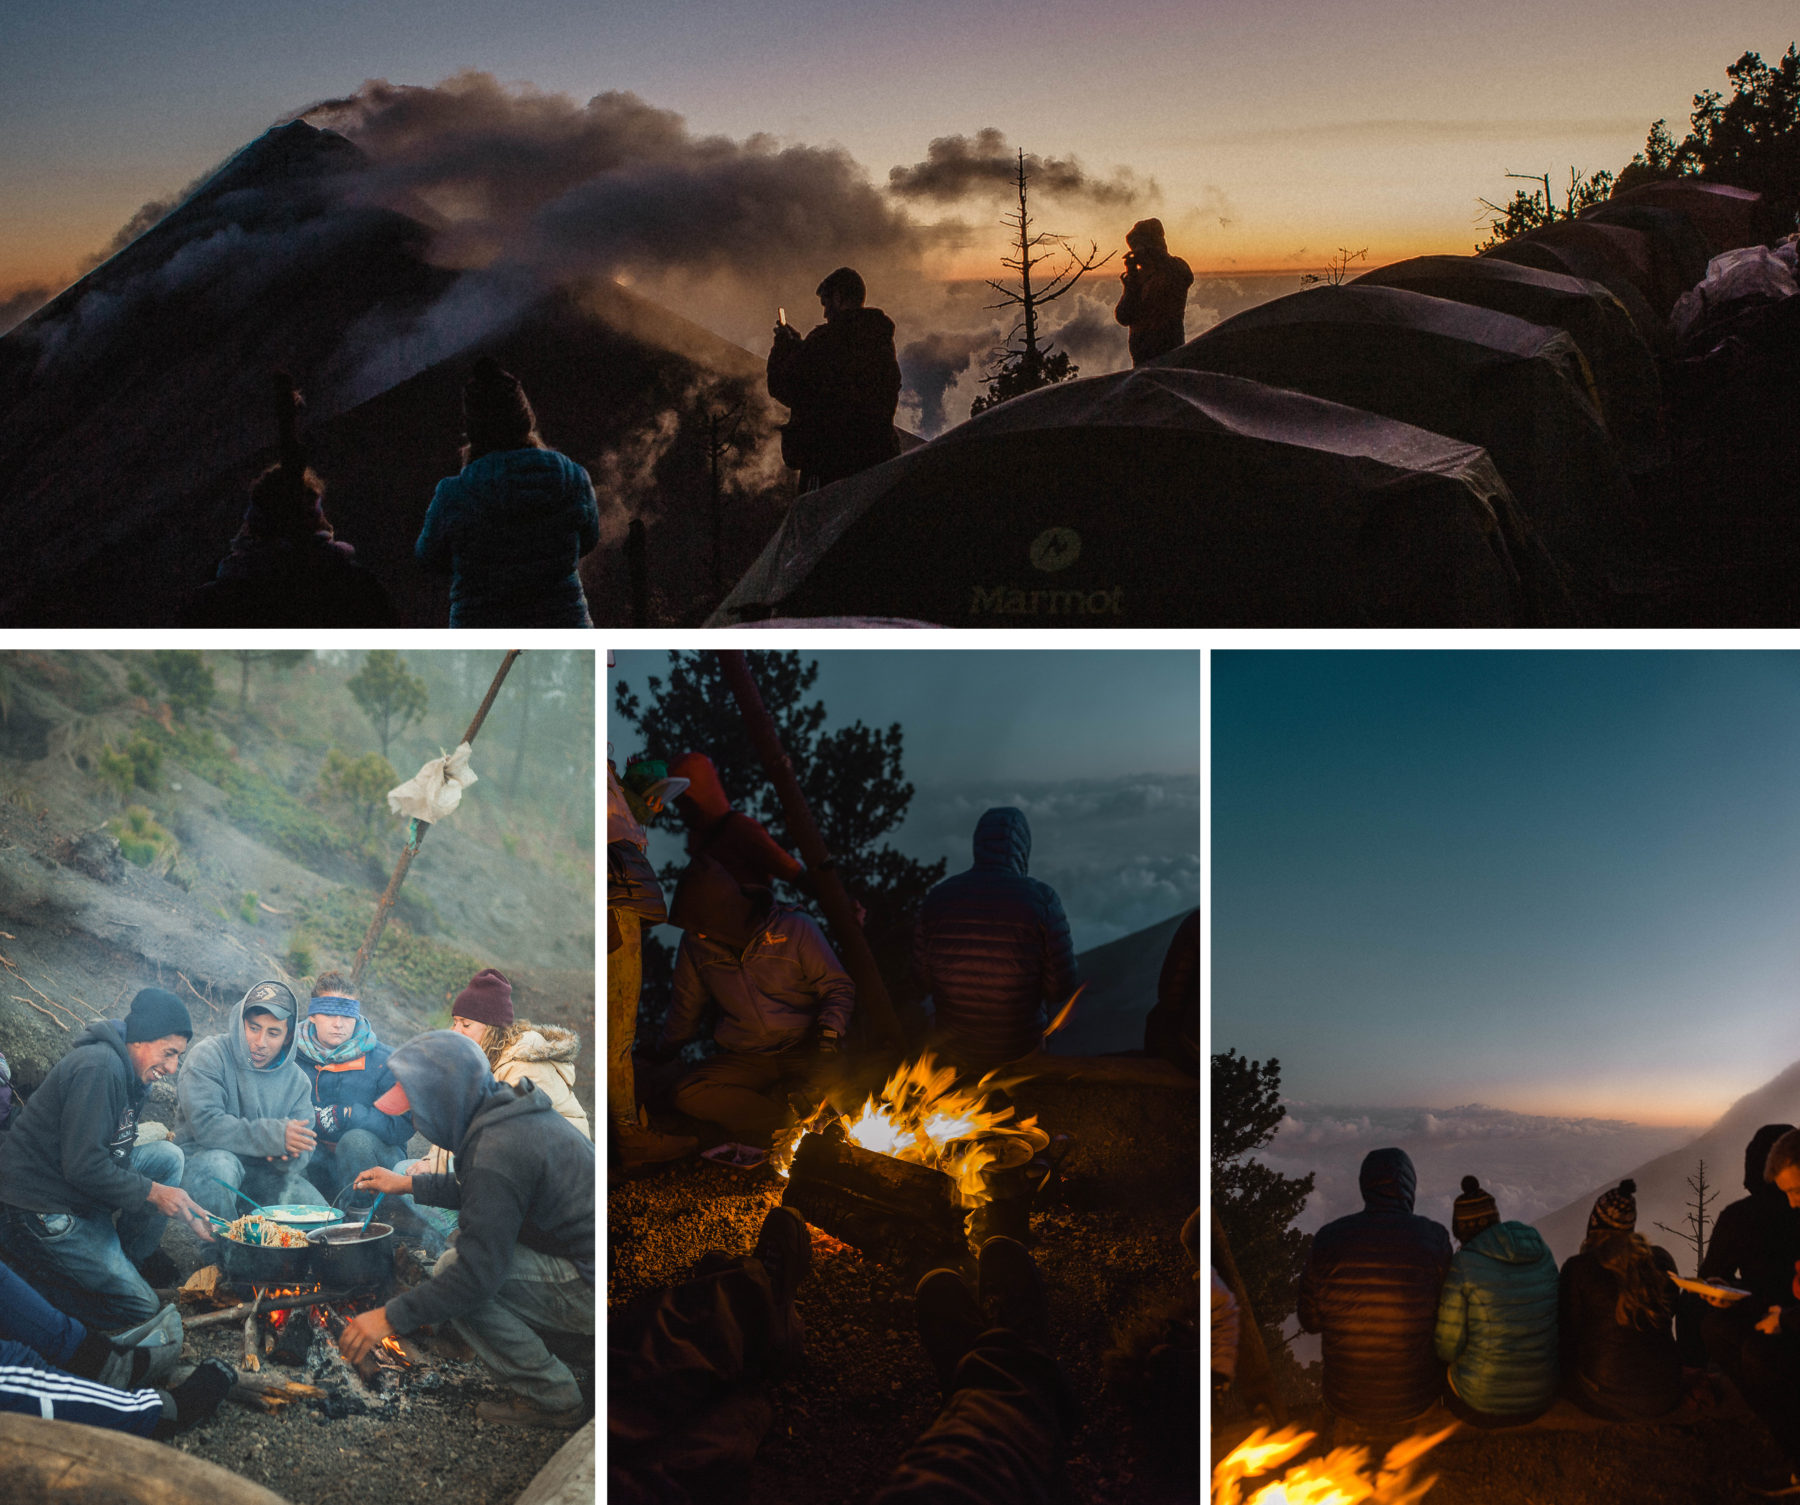 volcano acatenango sunrise tour guatemala central america adventure orange sky cloud forest misty green above the clouds campfire camp above the clouds